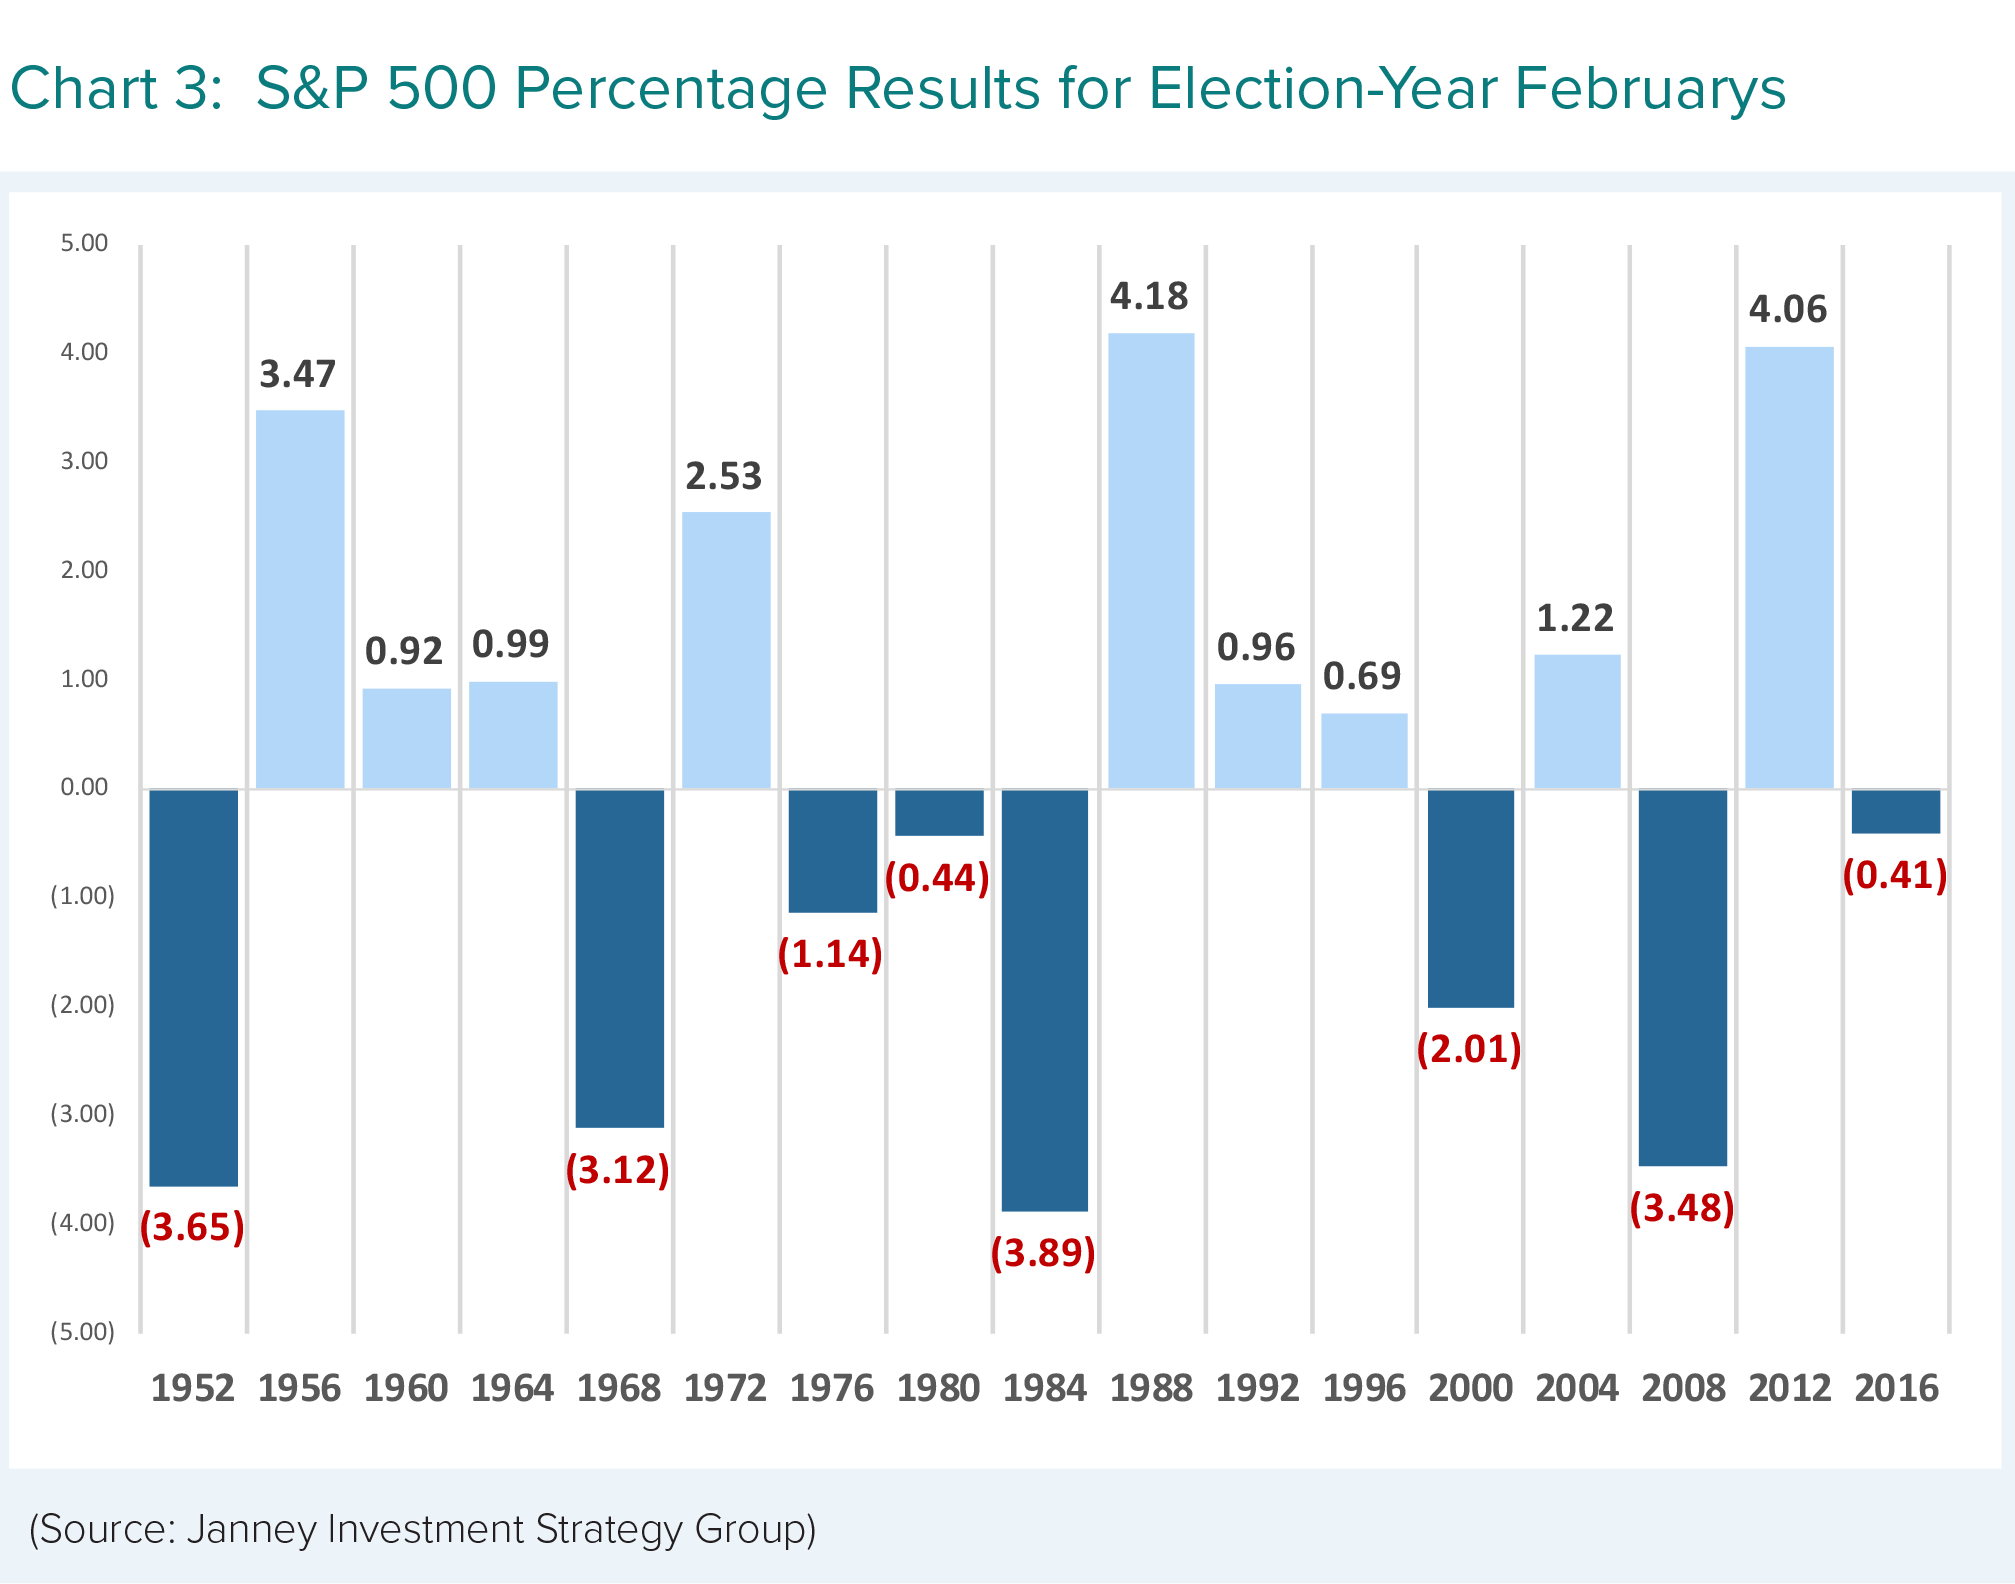 S&P 500 Percentage Results for Election-Year Februarys